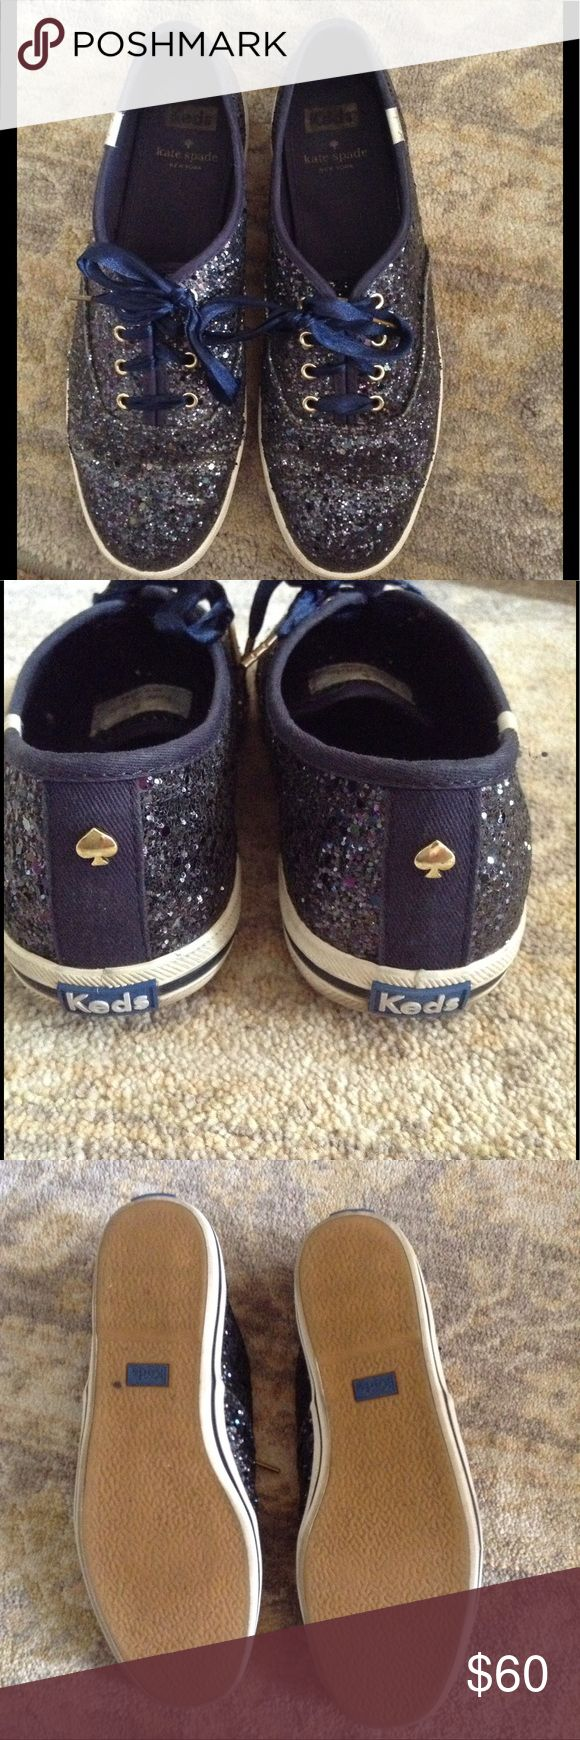 Kate spade navy blue glitter Keds tennis shoes Size 8 blue glitter sneakers with ribbon laces. Originally $80. Signs of wear: glitter has fallen off on some areas where the shoe naturally rubs and bends. (See last pic) kate spade Shoes Sneakers